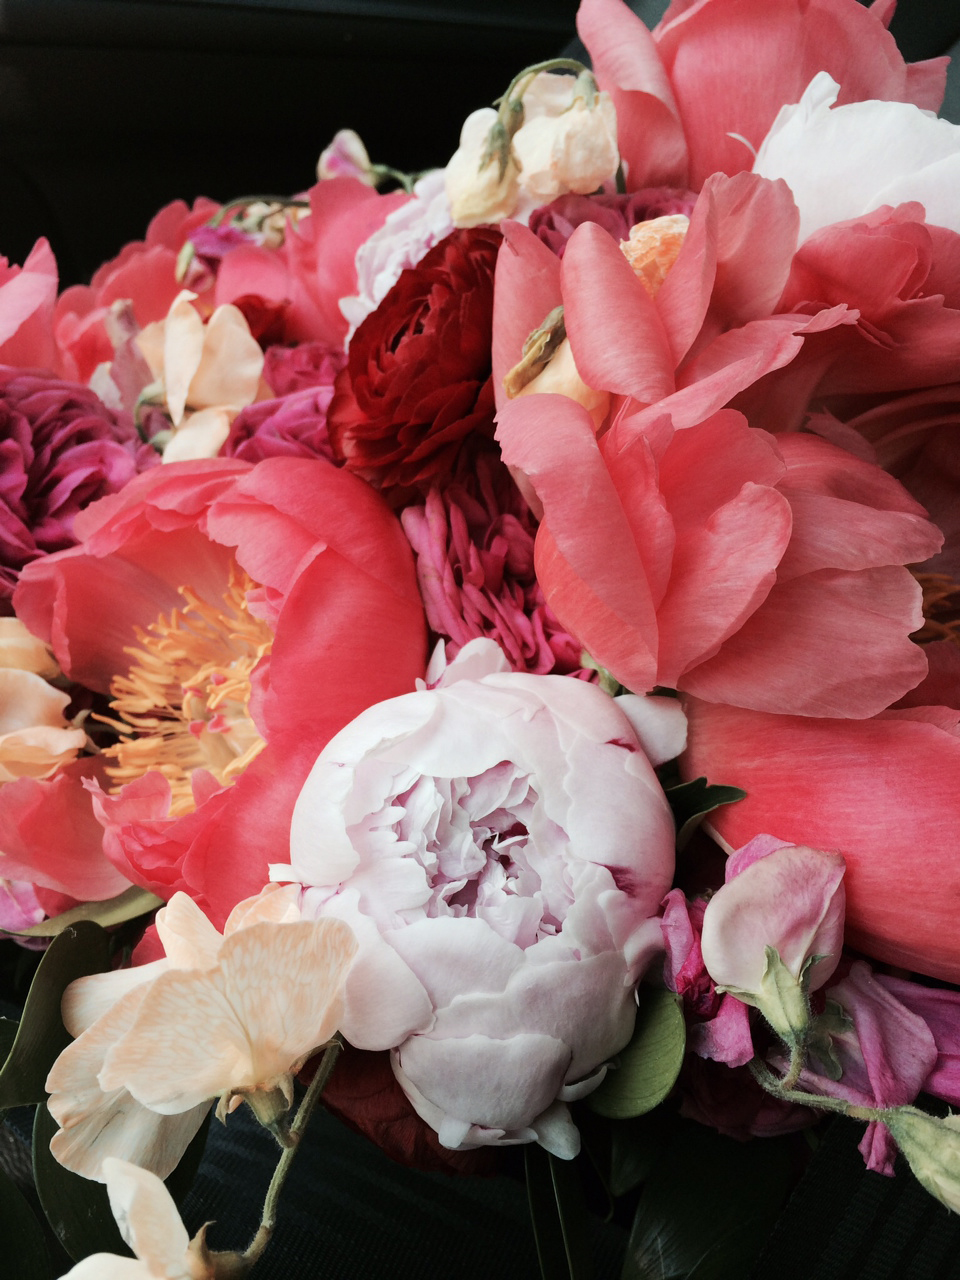 Coral peonies were the perfect blooms for our vibrant summer color palette.